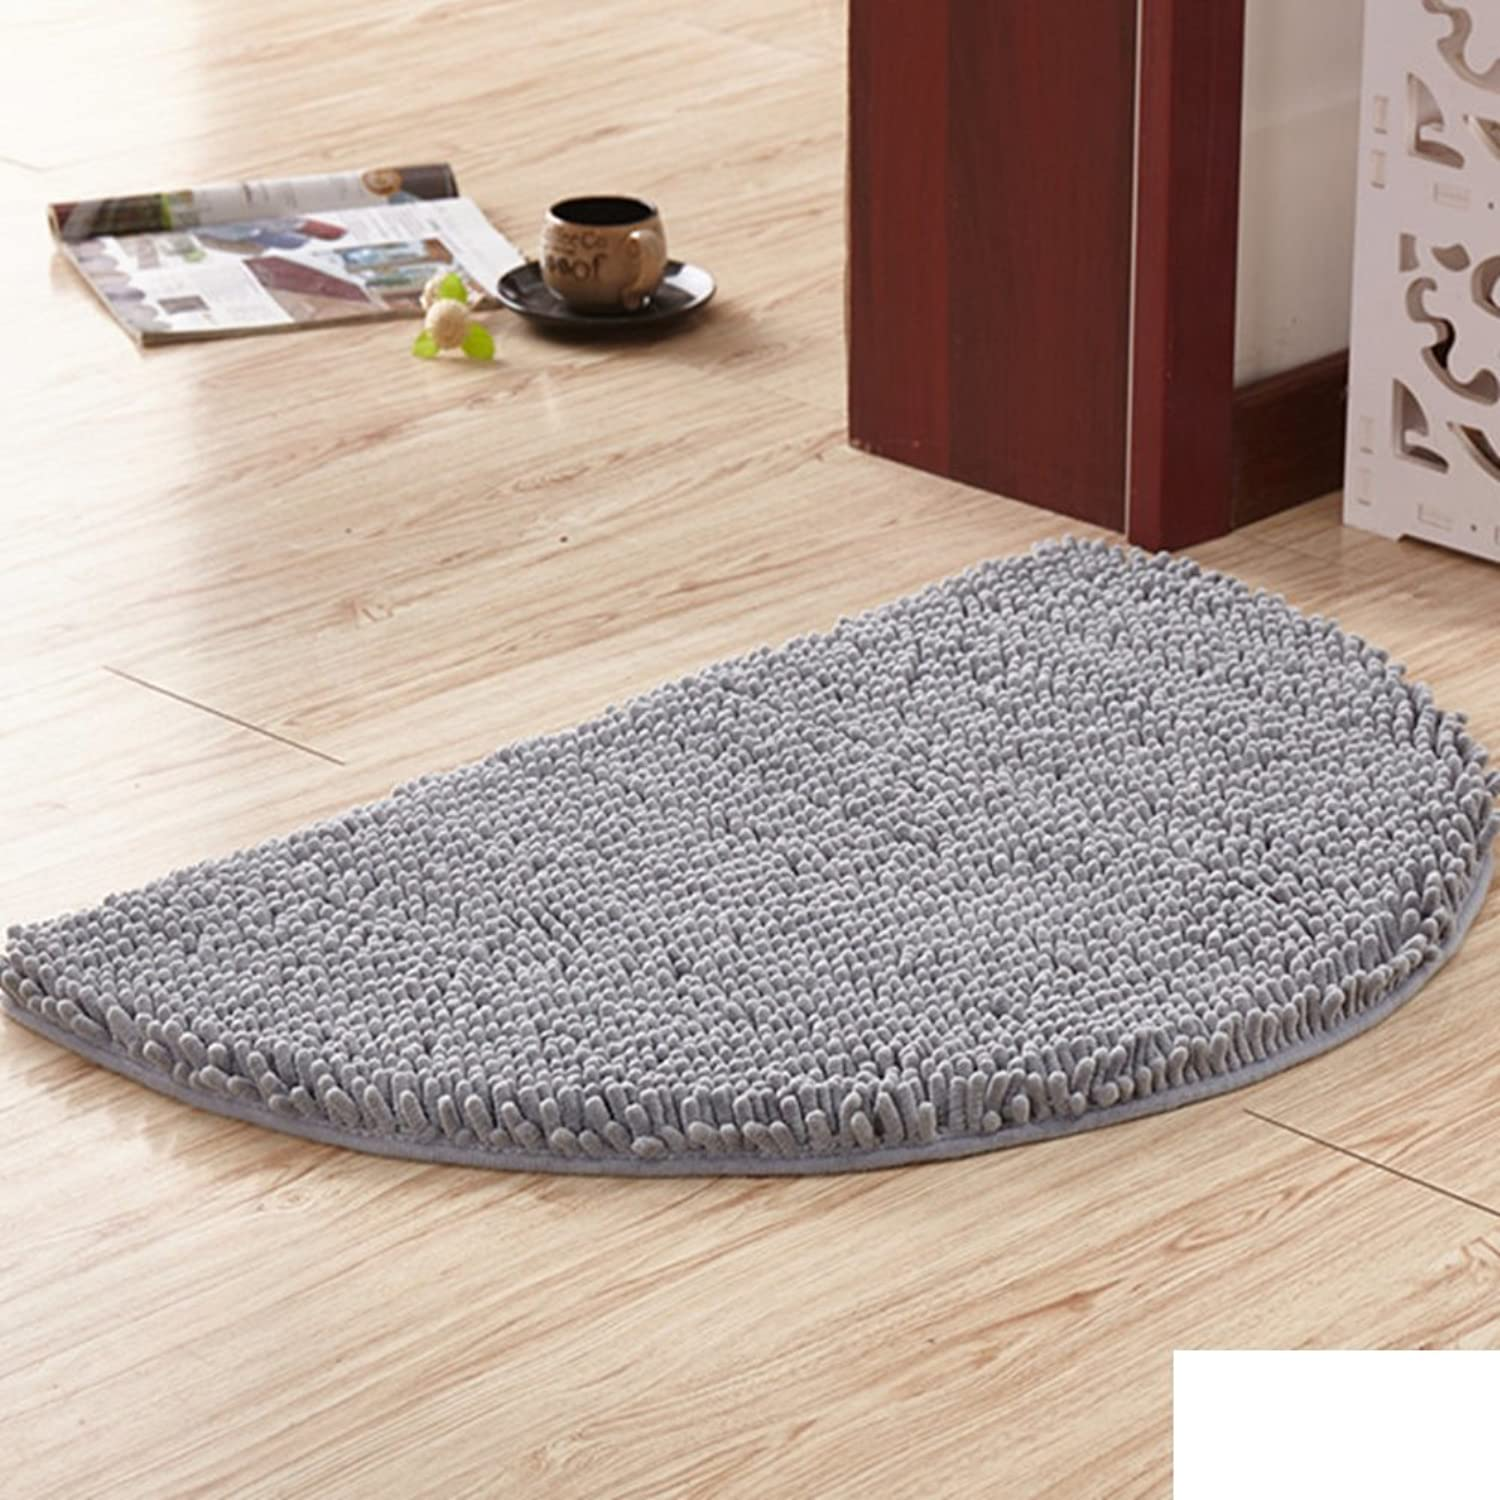 Suction mat in the doorway toilet lobby non-slip mat foot pad-E 60x90cm(24x35inch)